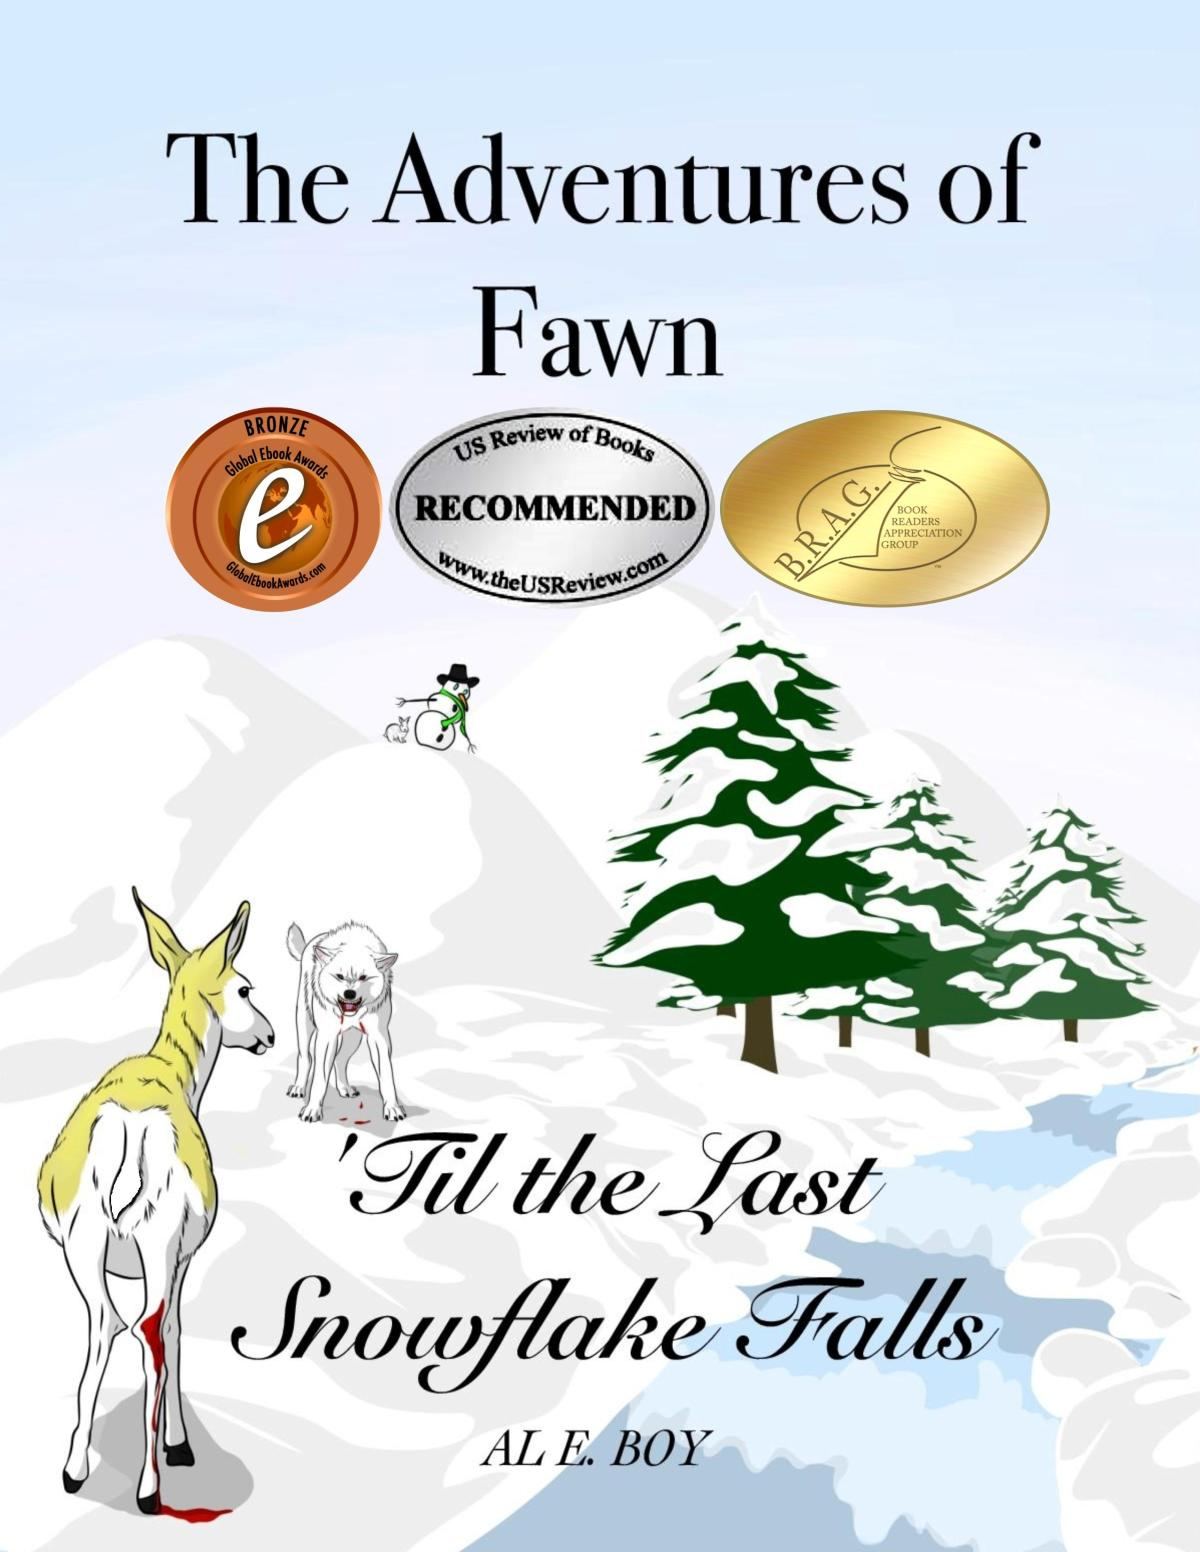 'Til the Last Snowflake Falls (The Adventures of Fawn #1) by Al E. Boy Review